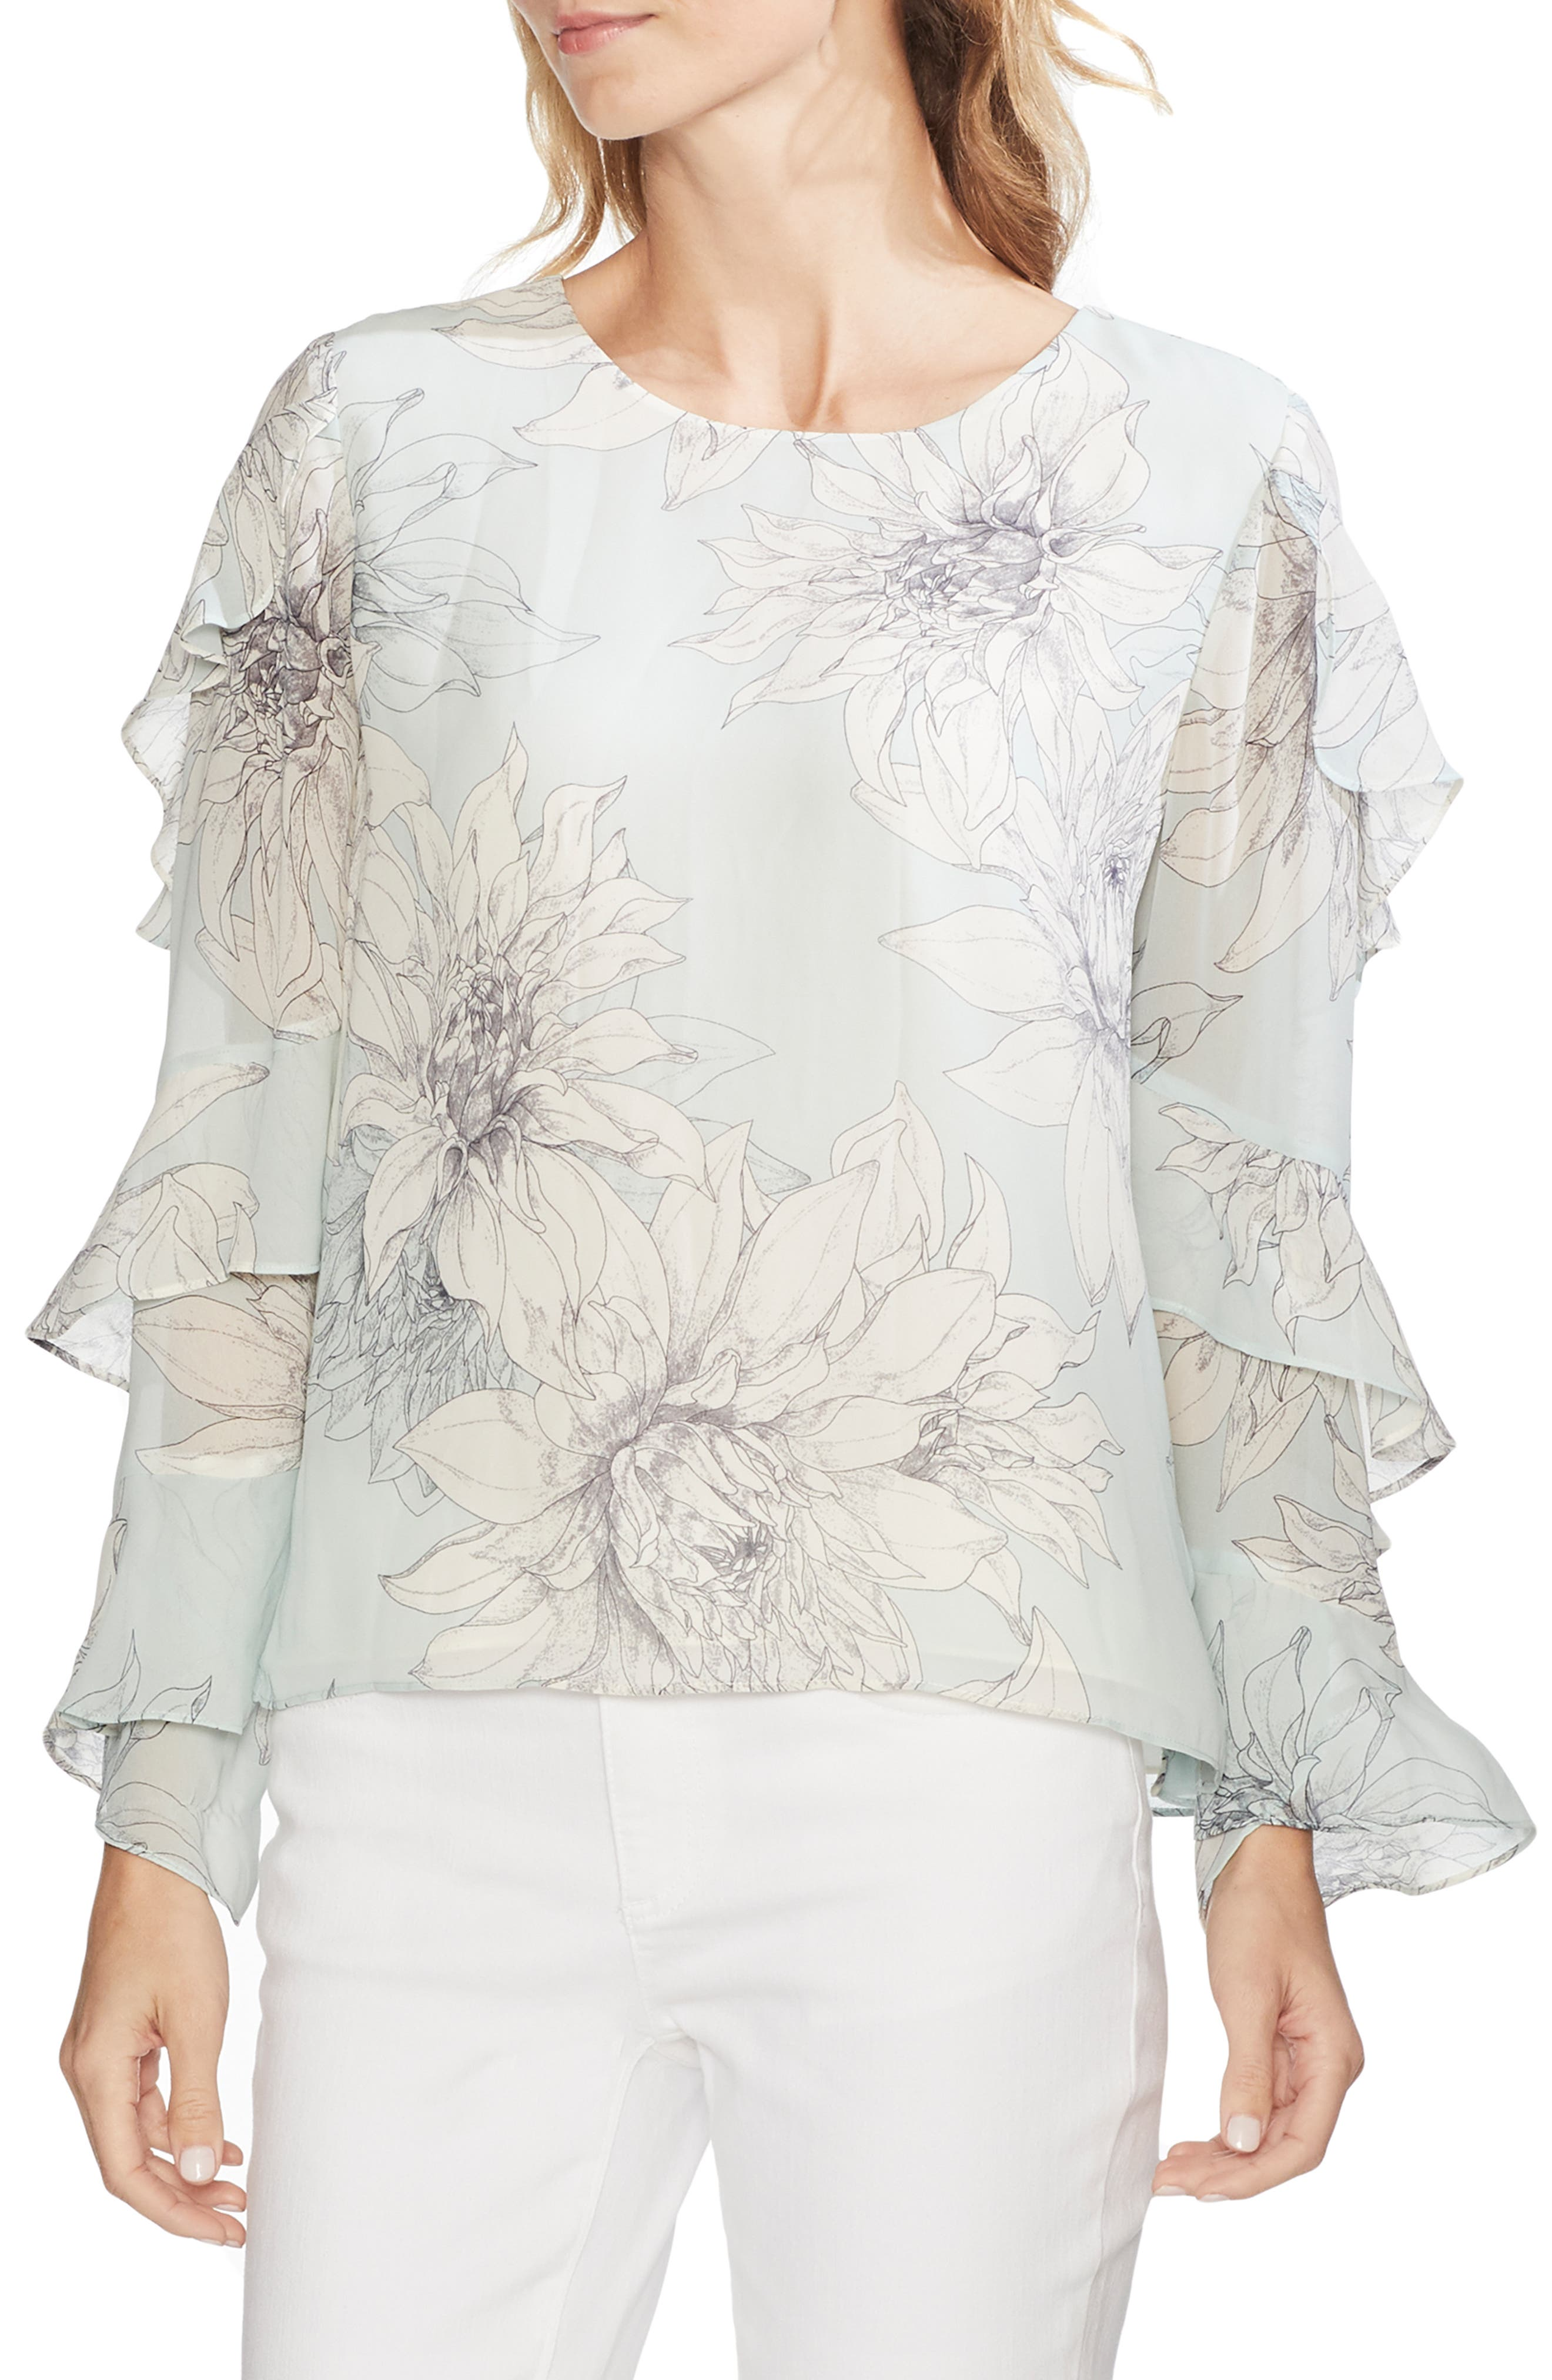 Pagoda Blossoms Tiered Ruffle Sleeve Blouse by Vince Camuto